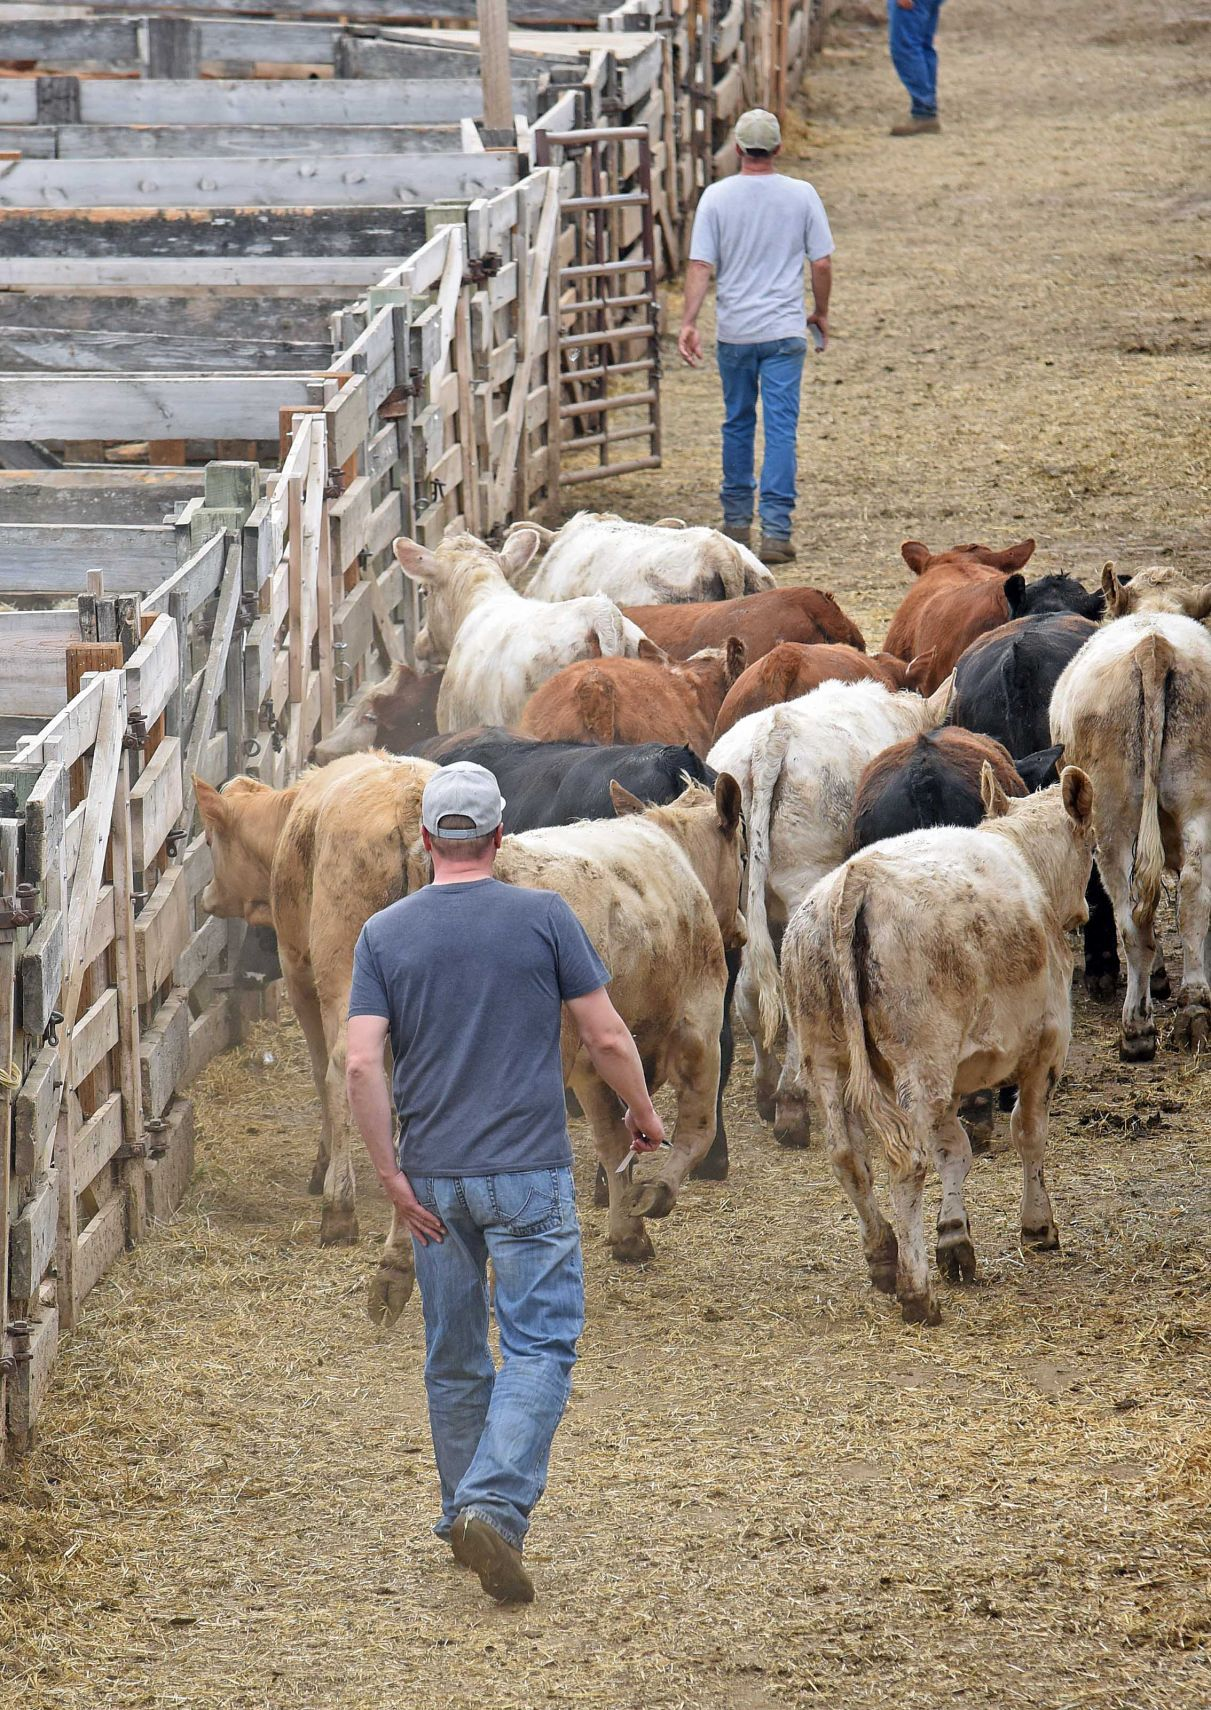 Drought causing ranchers to sell cattle